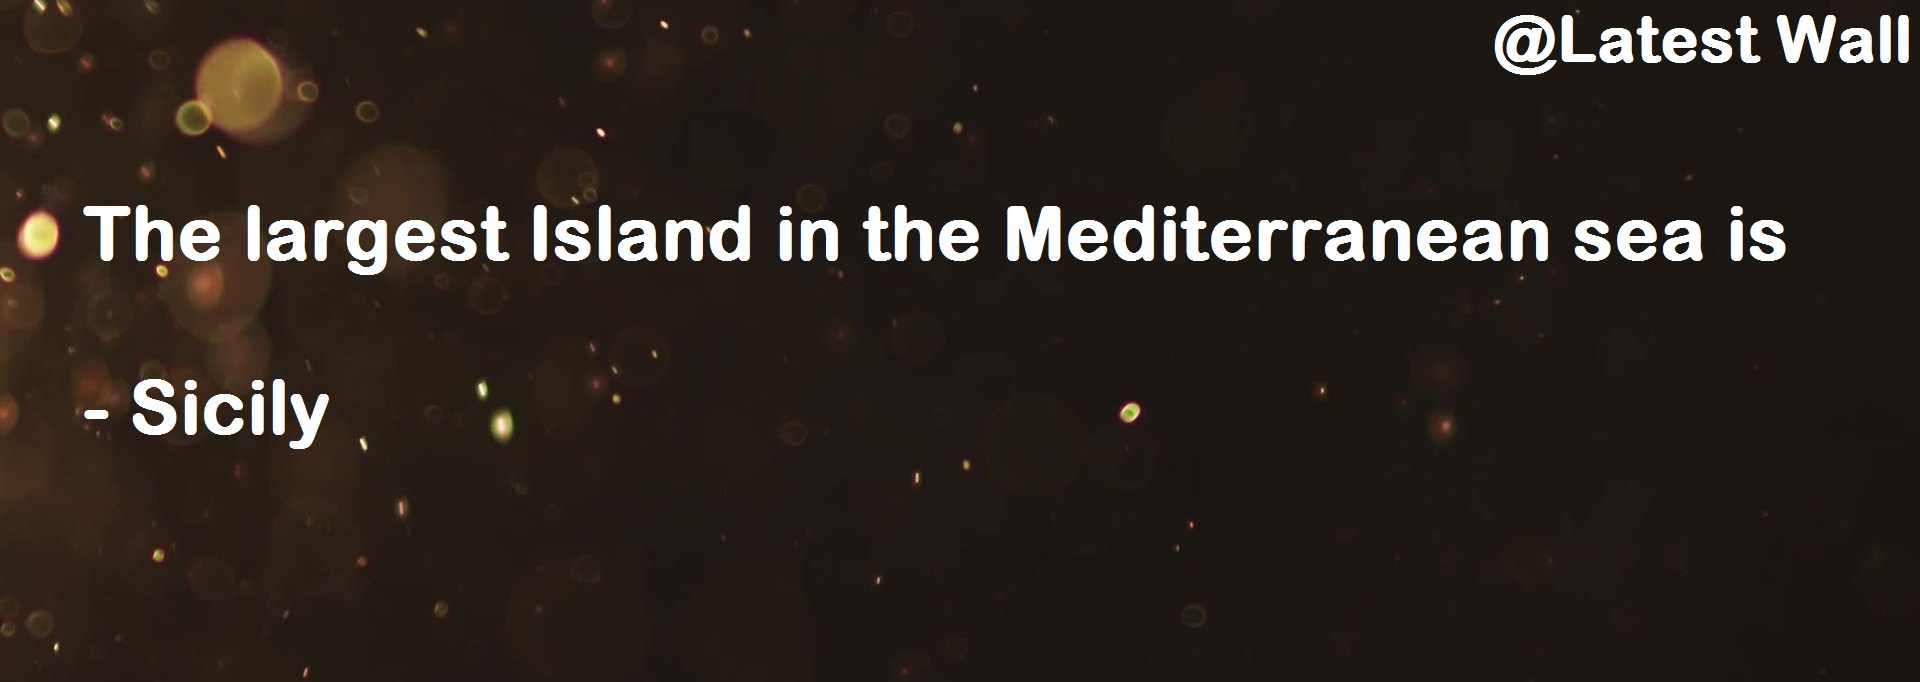 The largest Island in the Mediterranean sea is